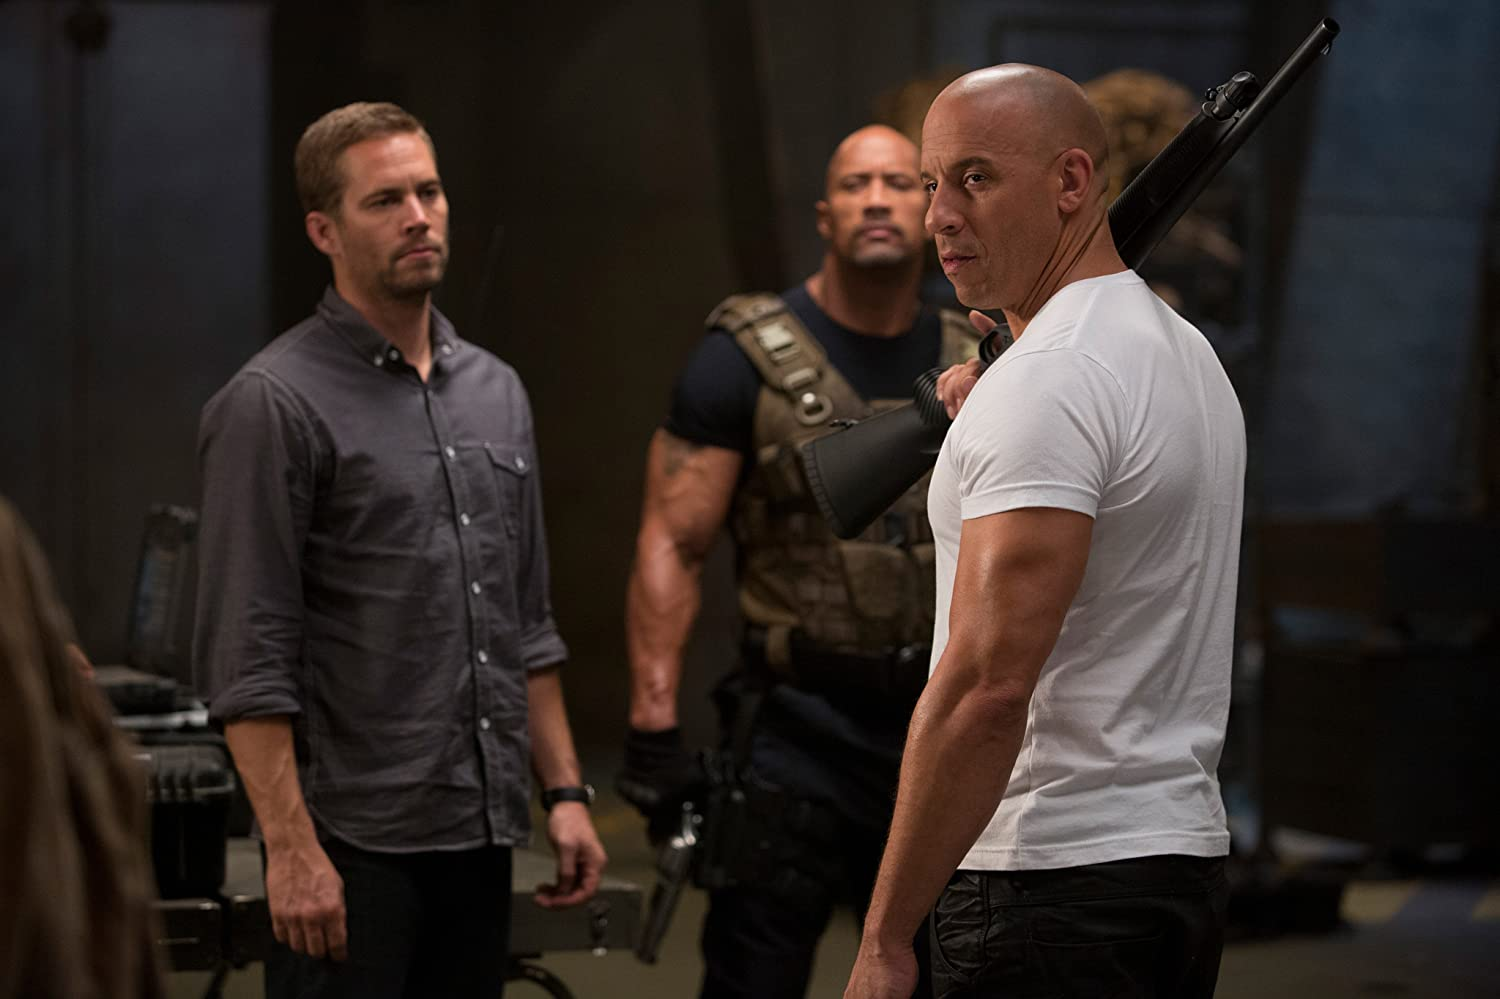 Vin Diesel, Dwayne Johnson, and Paul Walker in Furious 6 (2013)